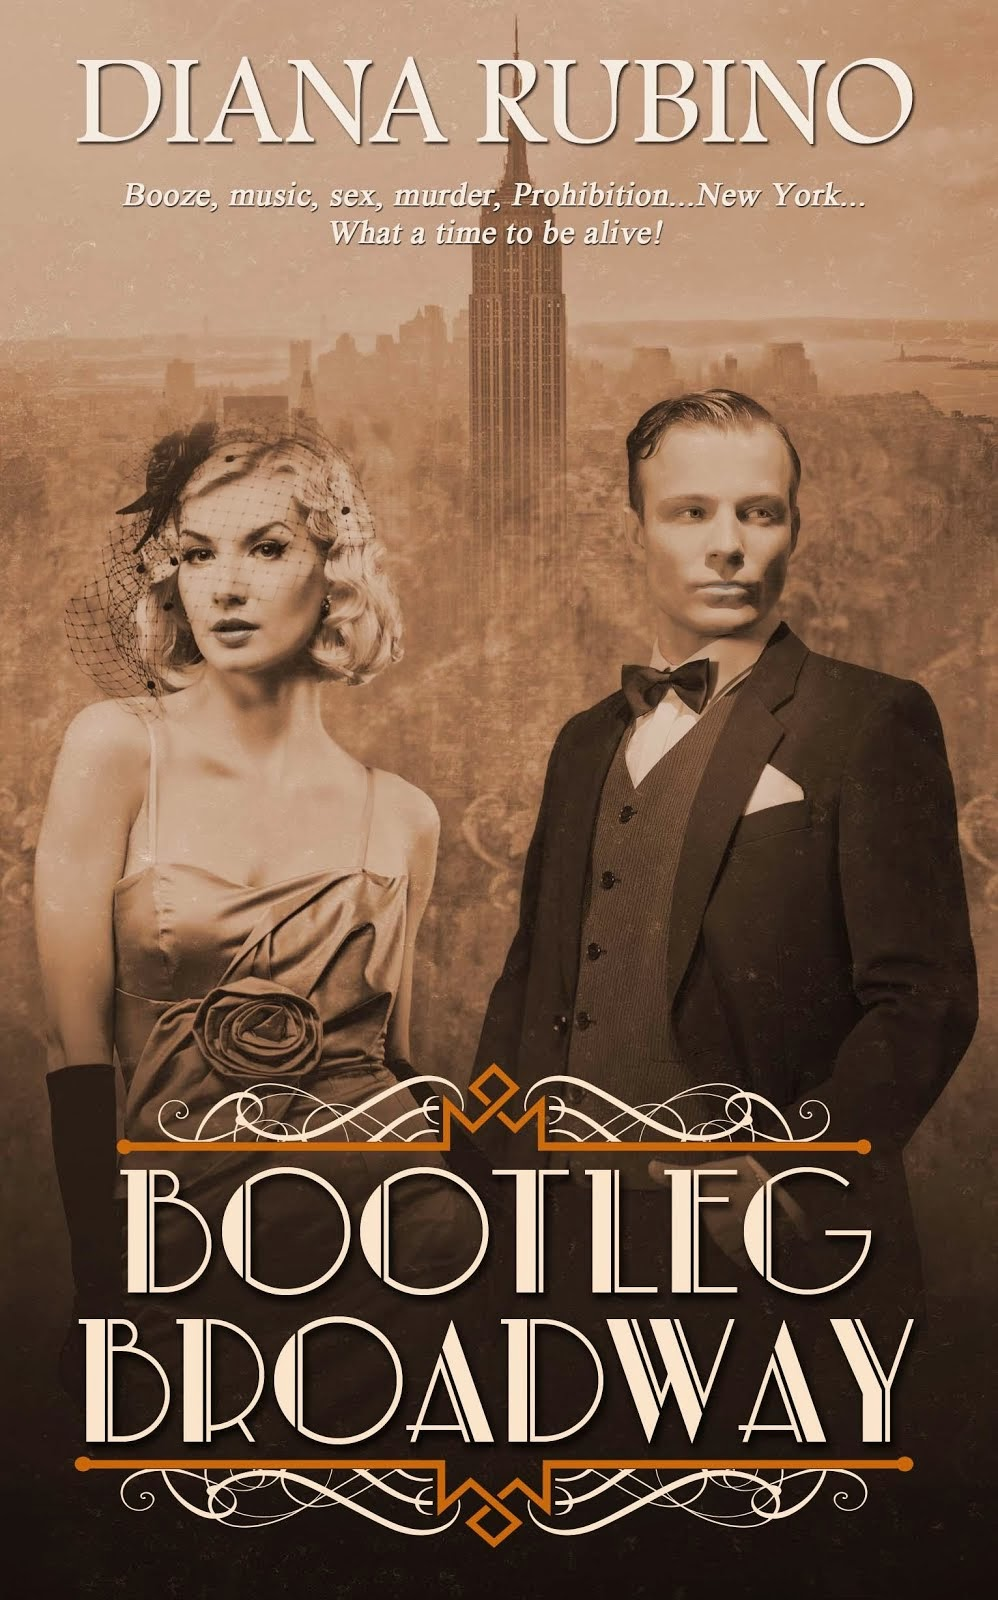 BOOTLEG BROADWAY--Book Two of the New York Saga